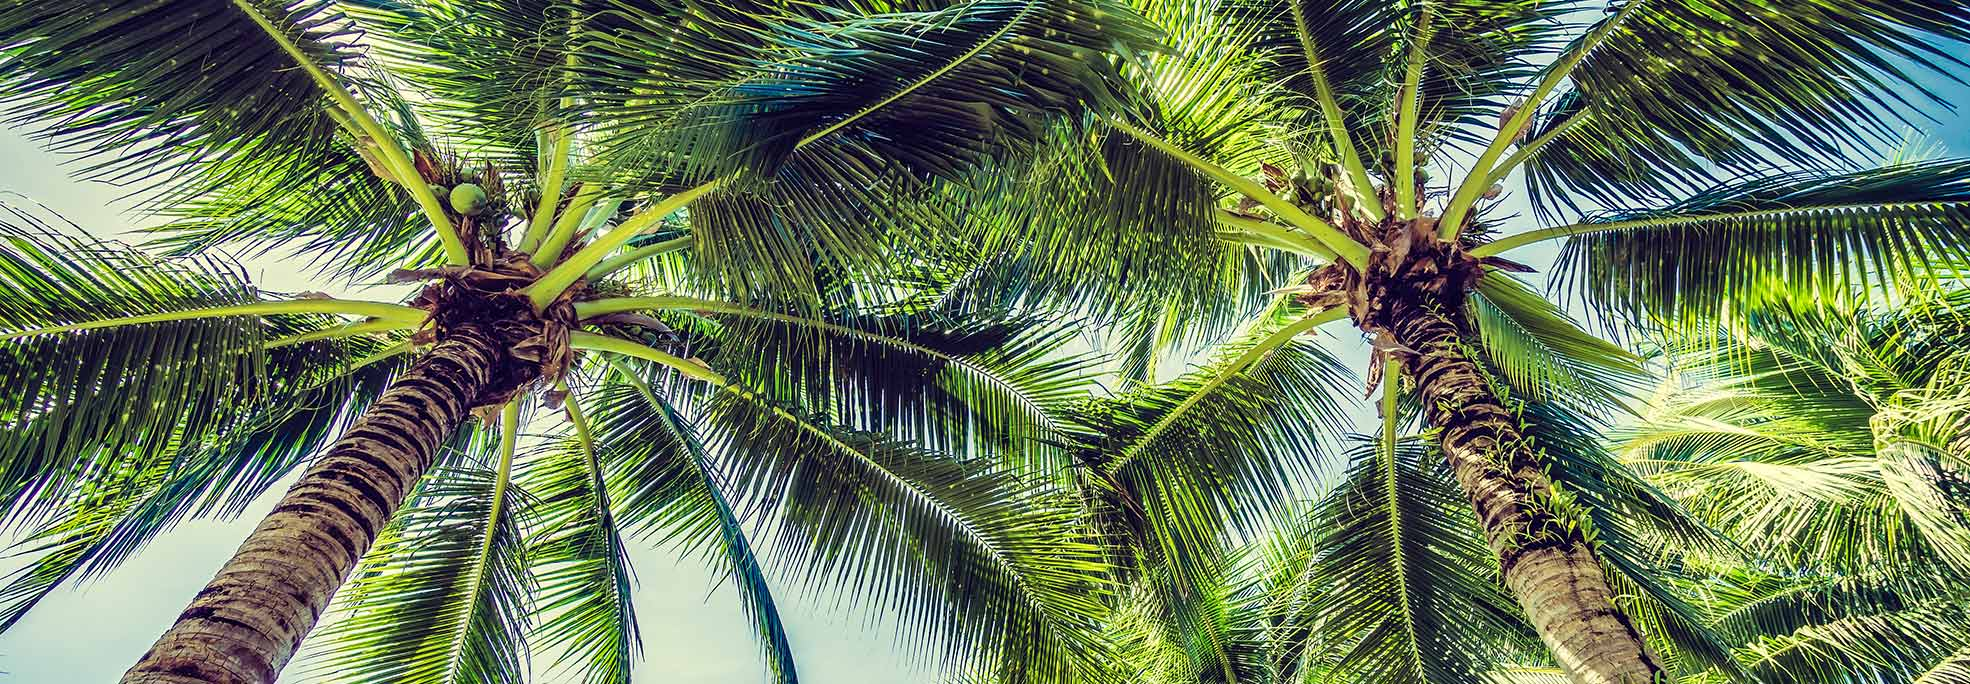 coconut trees view from below